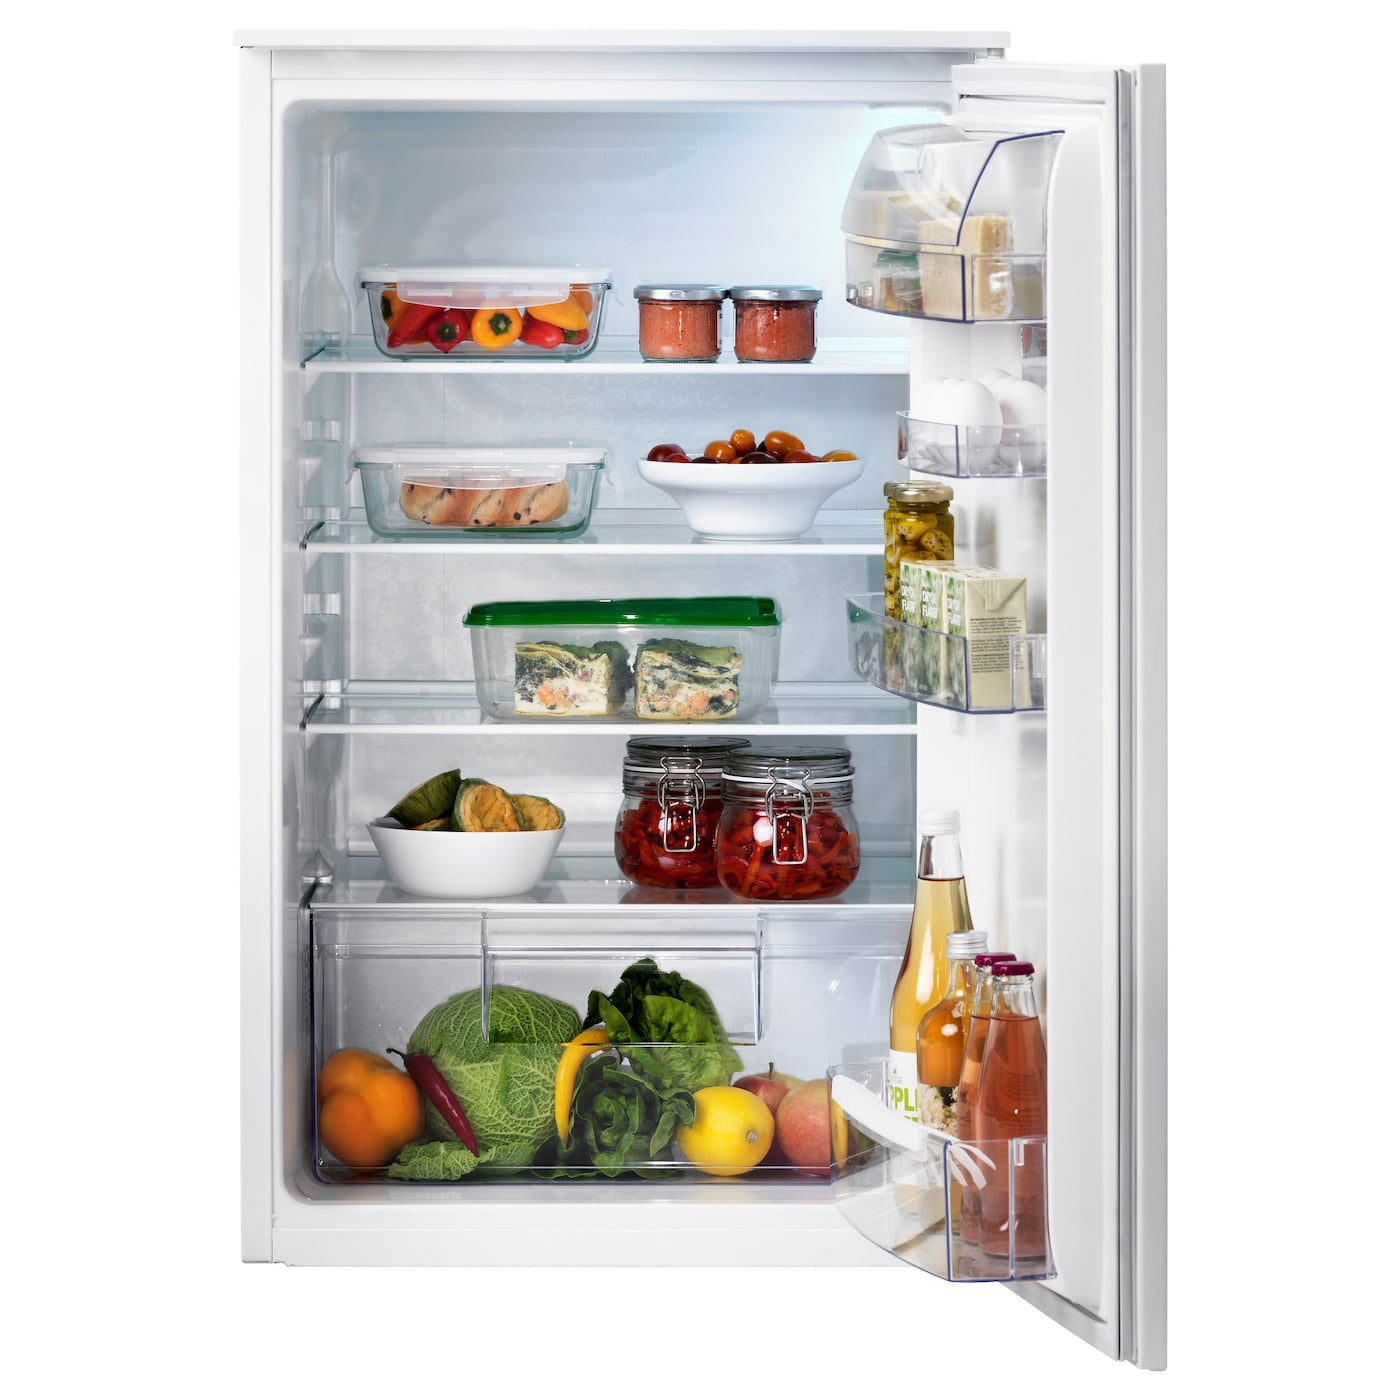 IKEA SVALNA integrated fridge A+ 5 year guarantee. Read about the terms in the guarantee brochure.